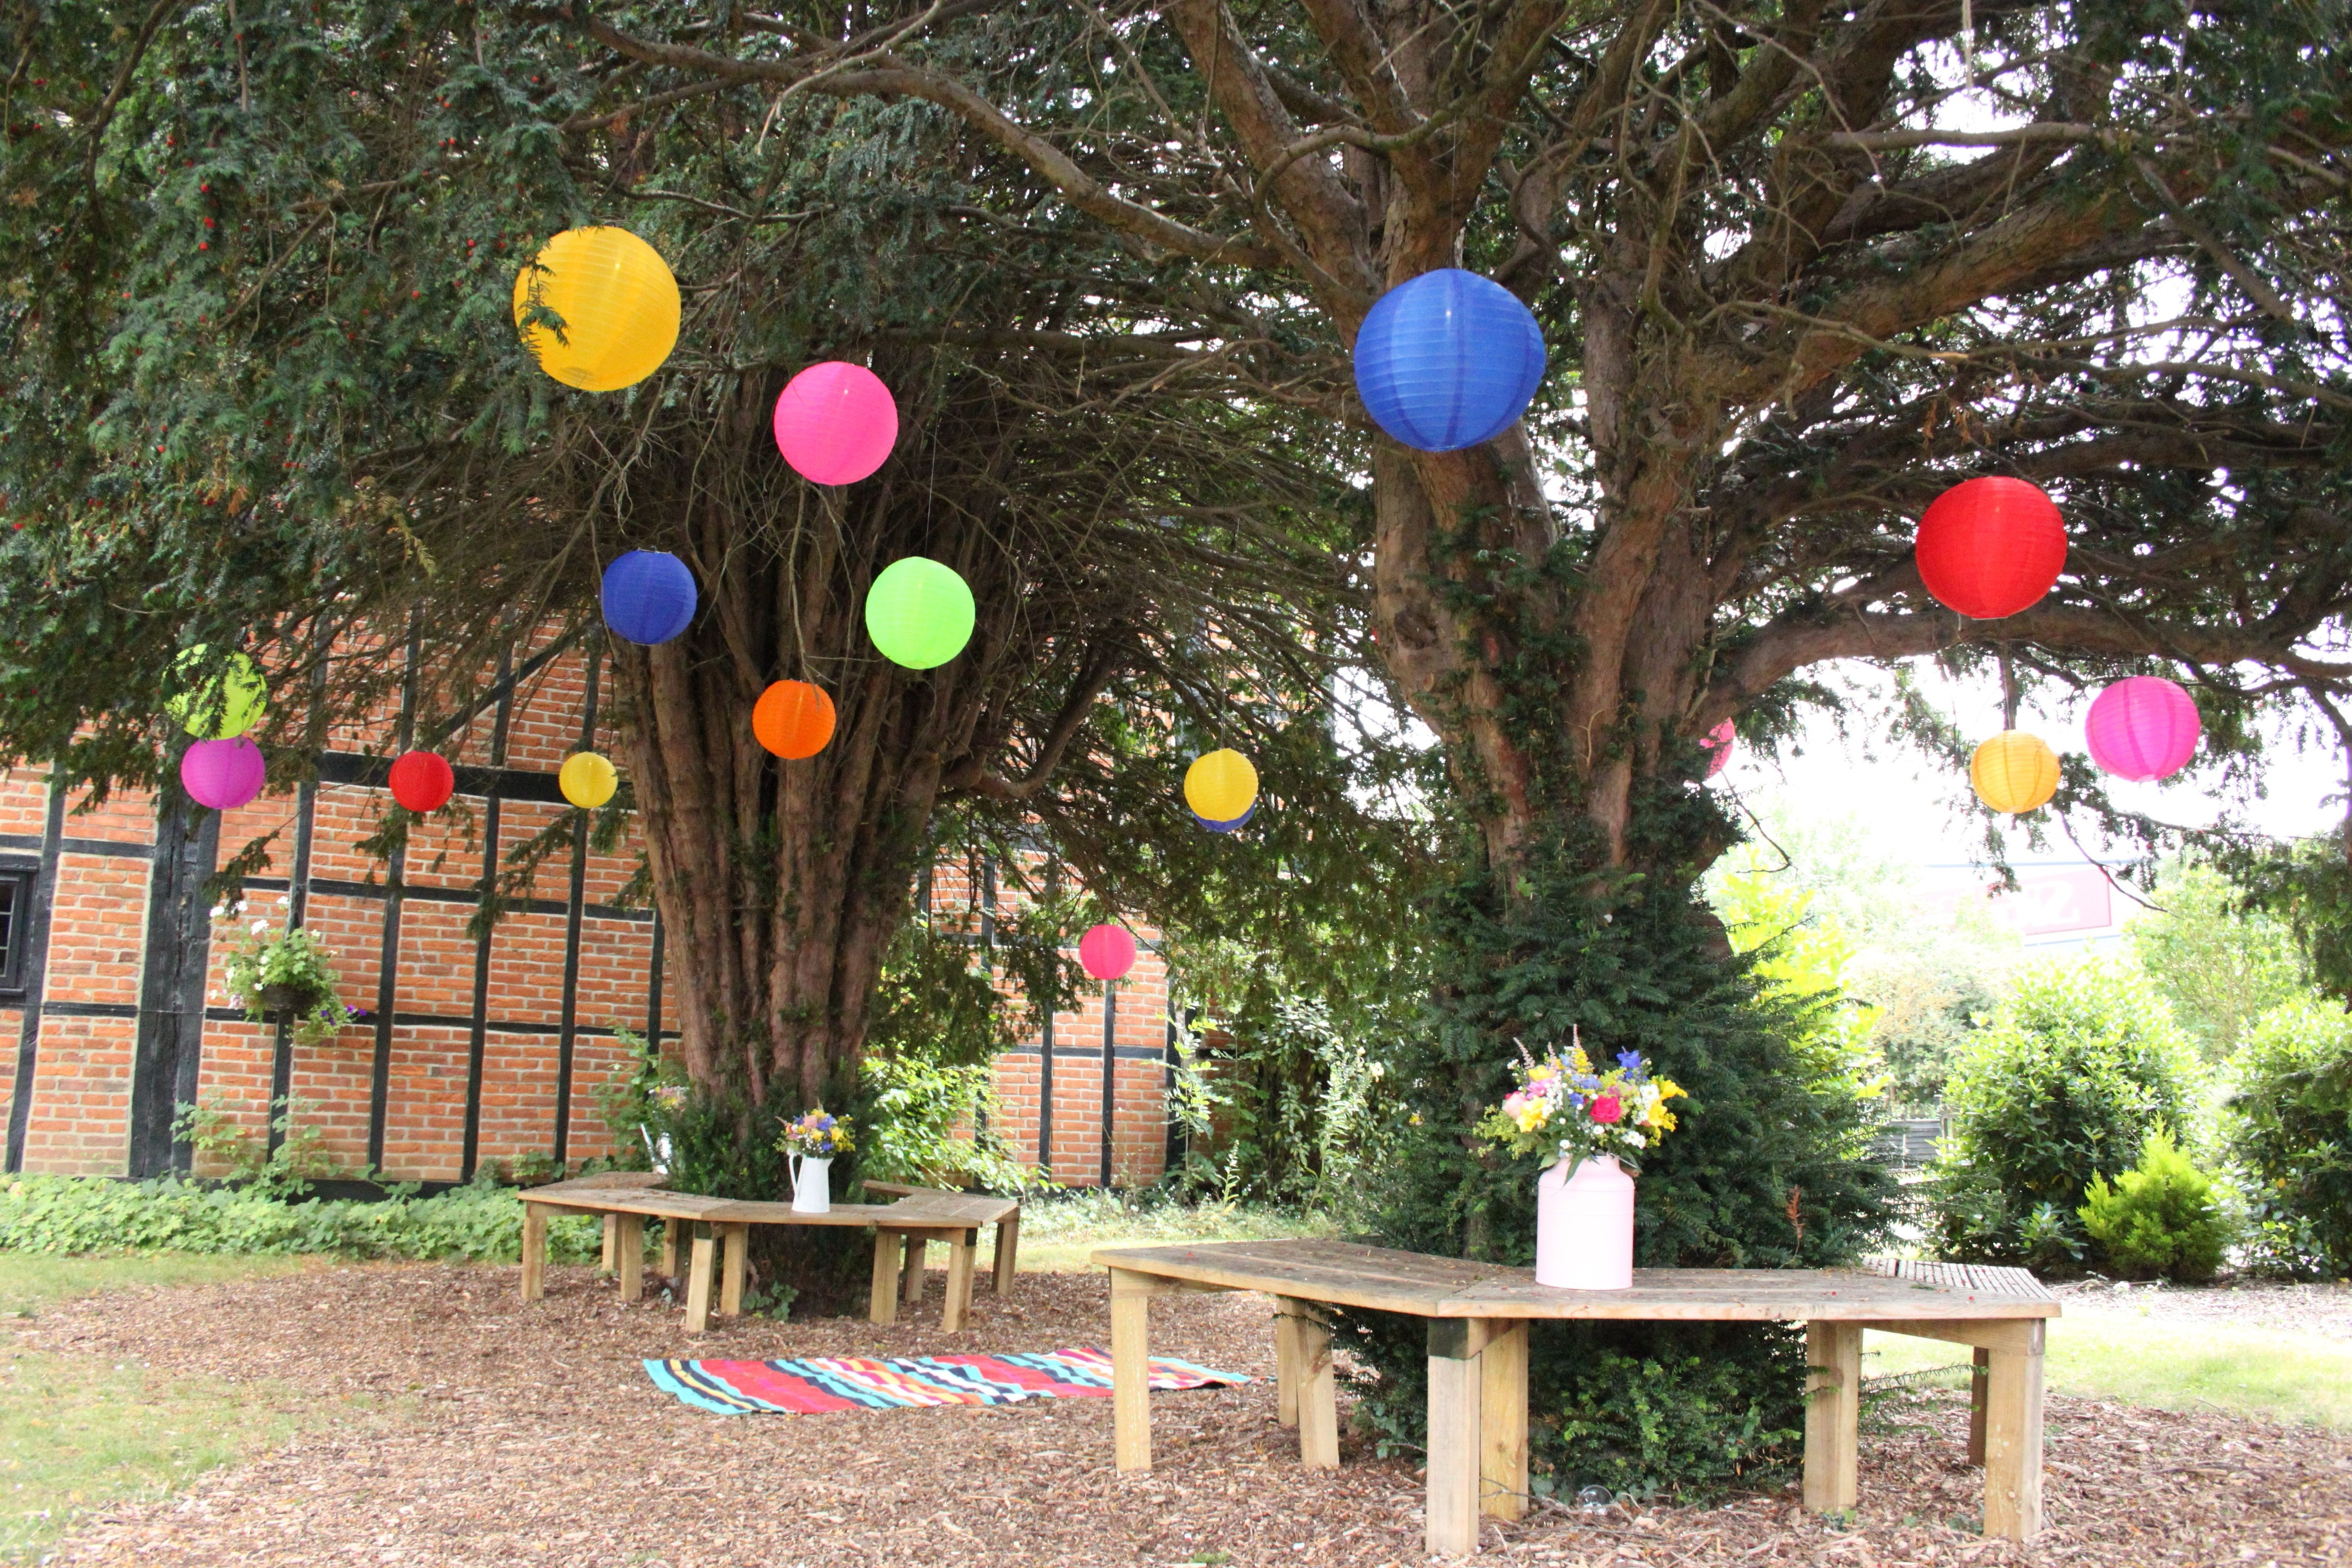 2019 Mad Hatters Outdoor Coloured Nylon Lanterns Hanging Randomly In The Regarding Outdoor Lanterns For Parties (Gallery 14 of 20)